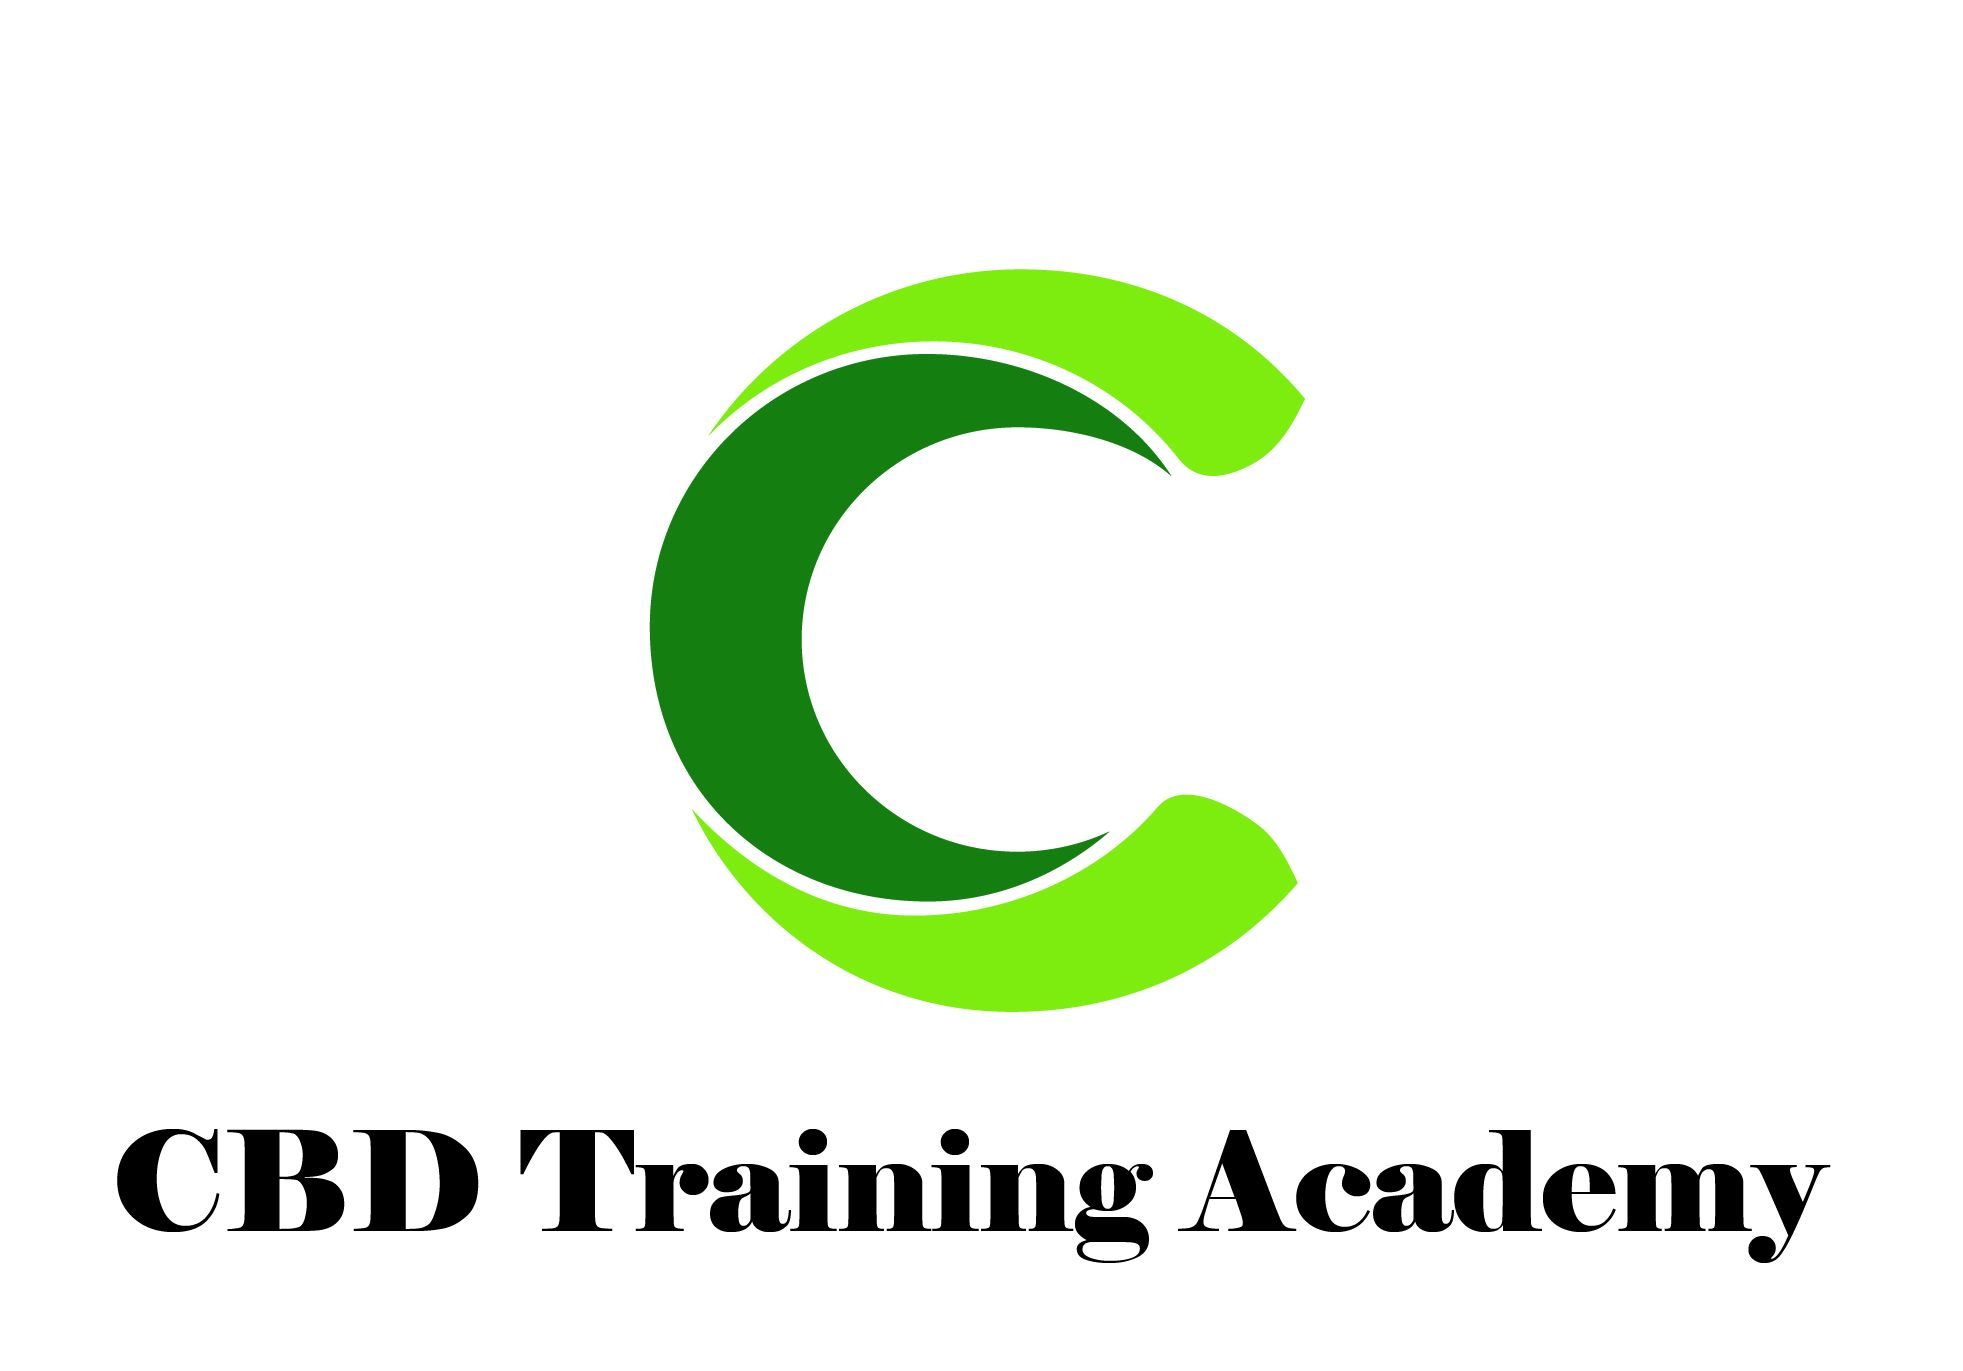 Cbd Training Academy Logo